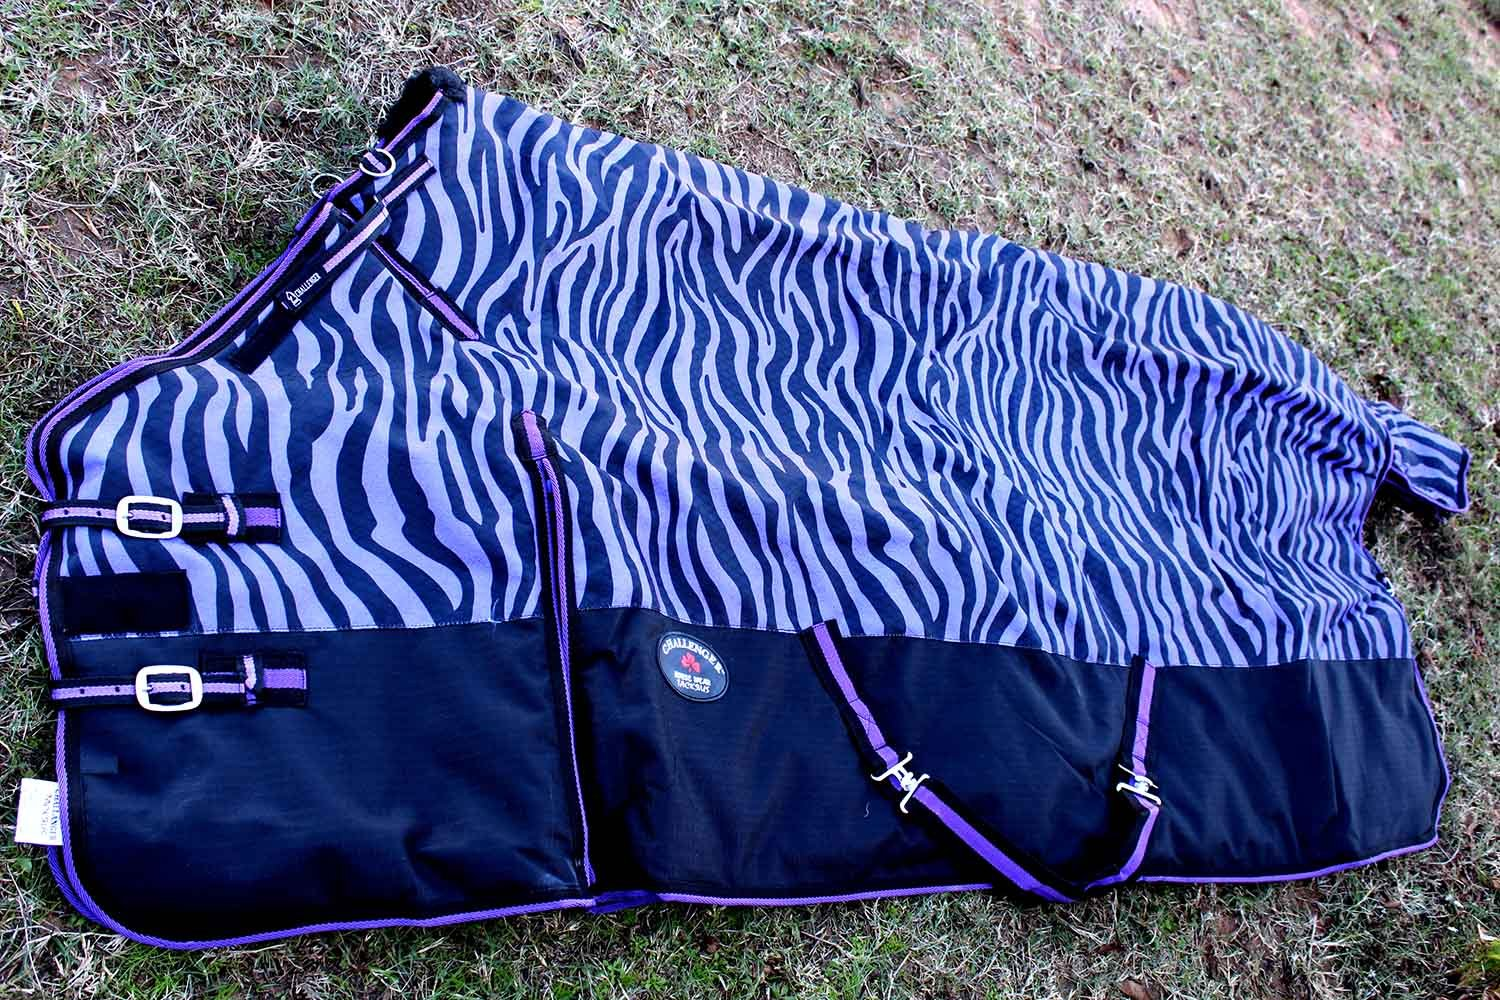 1200d Turnout防水Horse Tough冬ブランケットHeavy Zebra 560 g 68 inches 560G B016LY678W 74 inches  74 inches